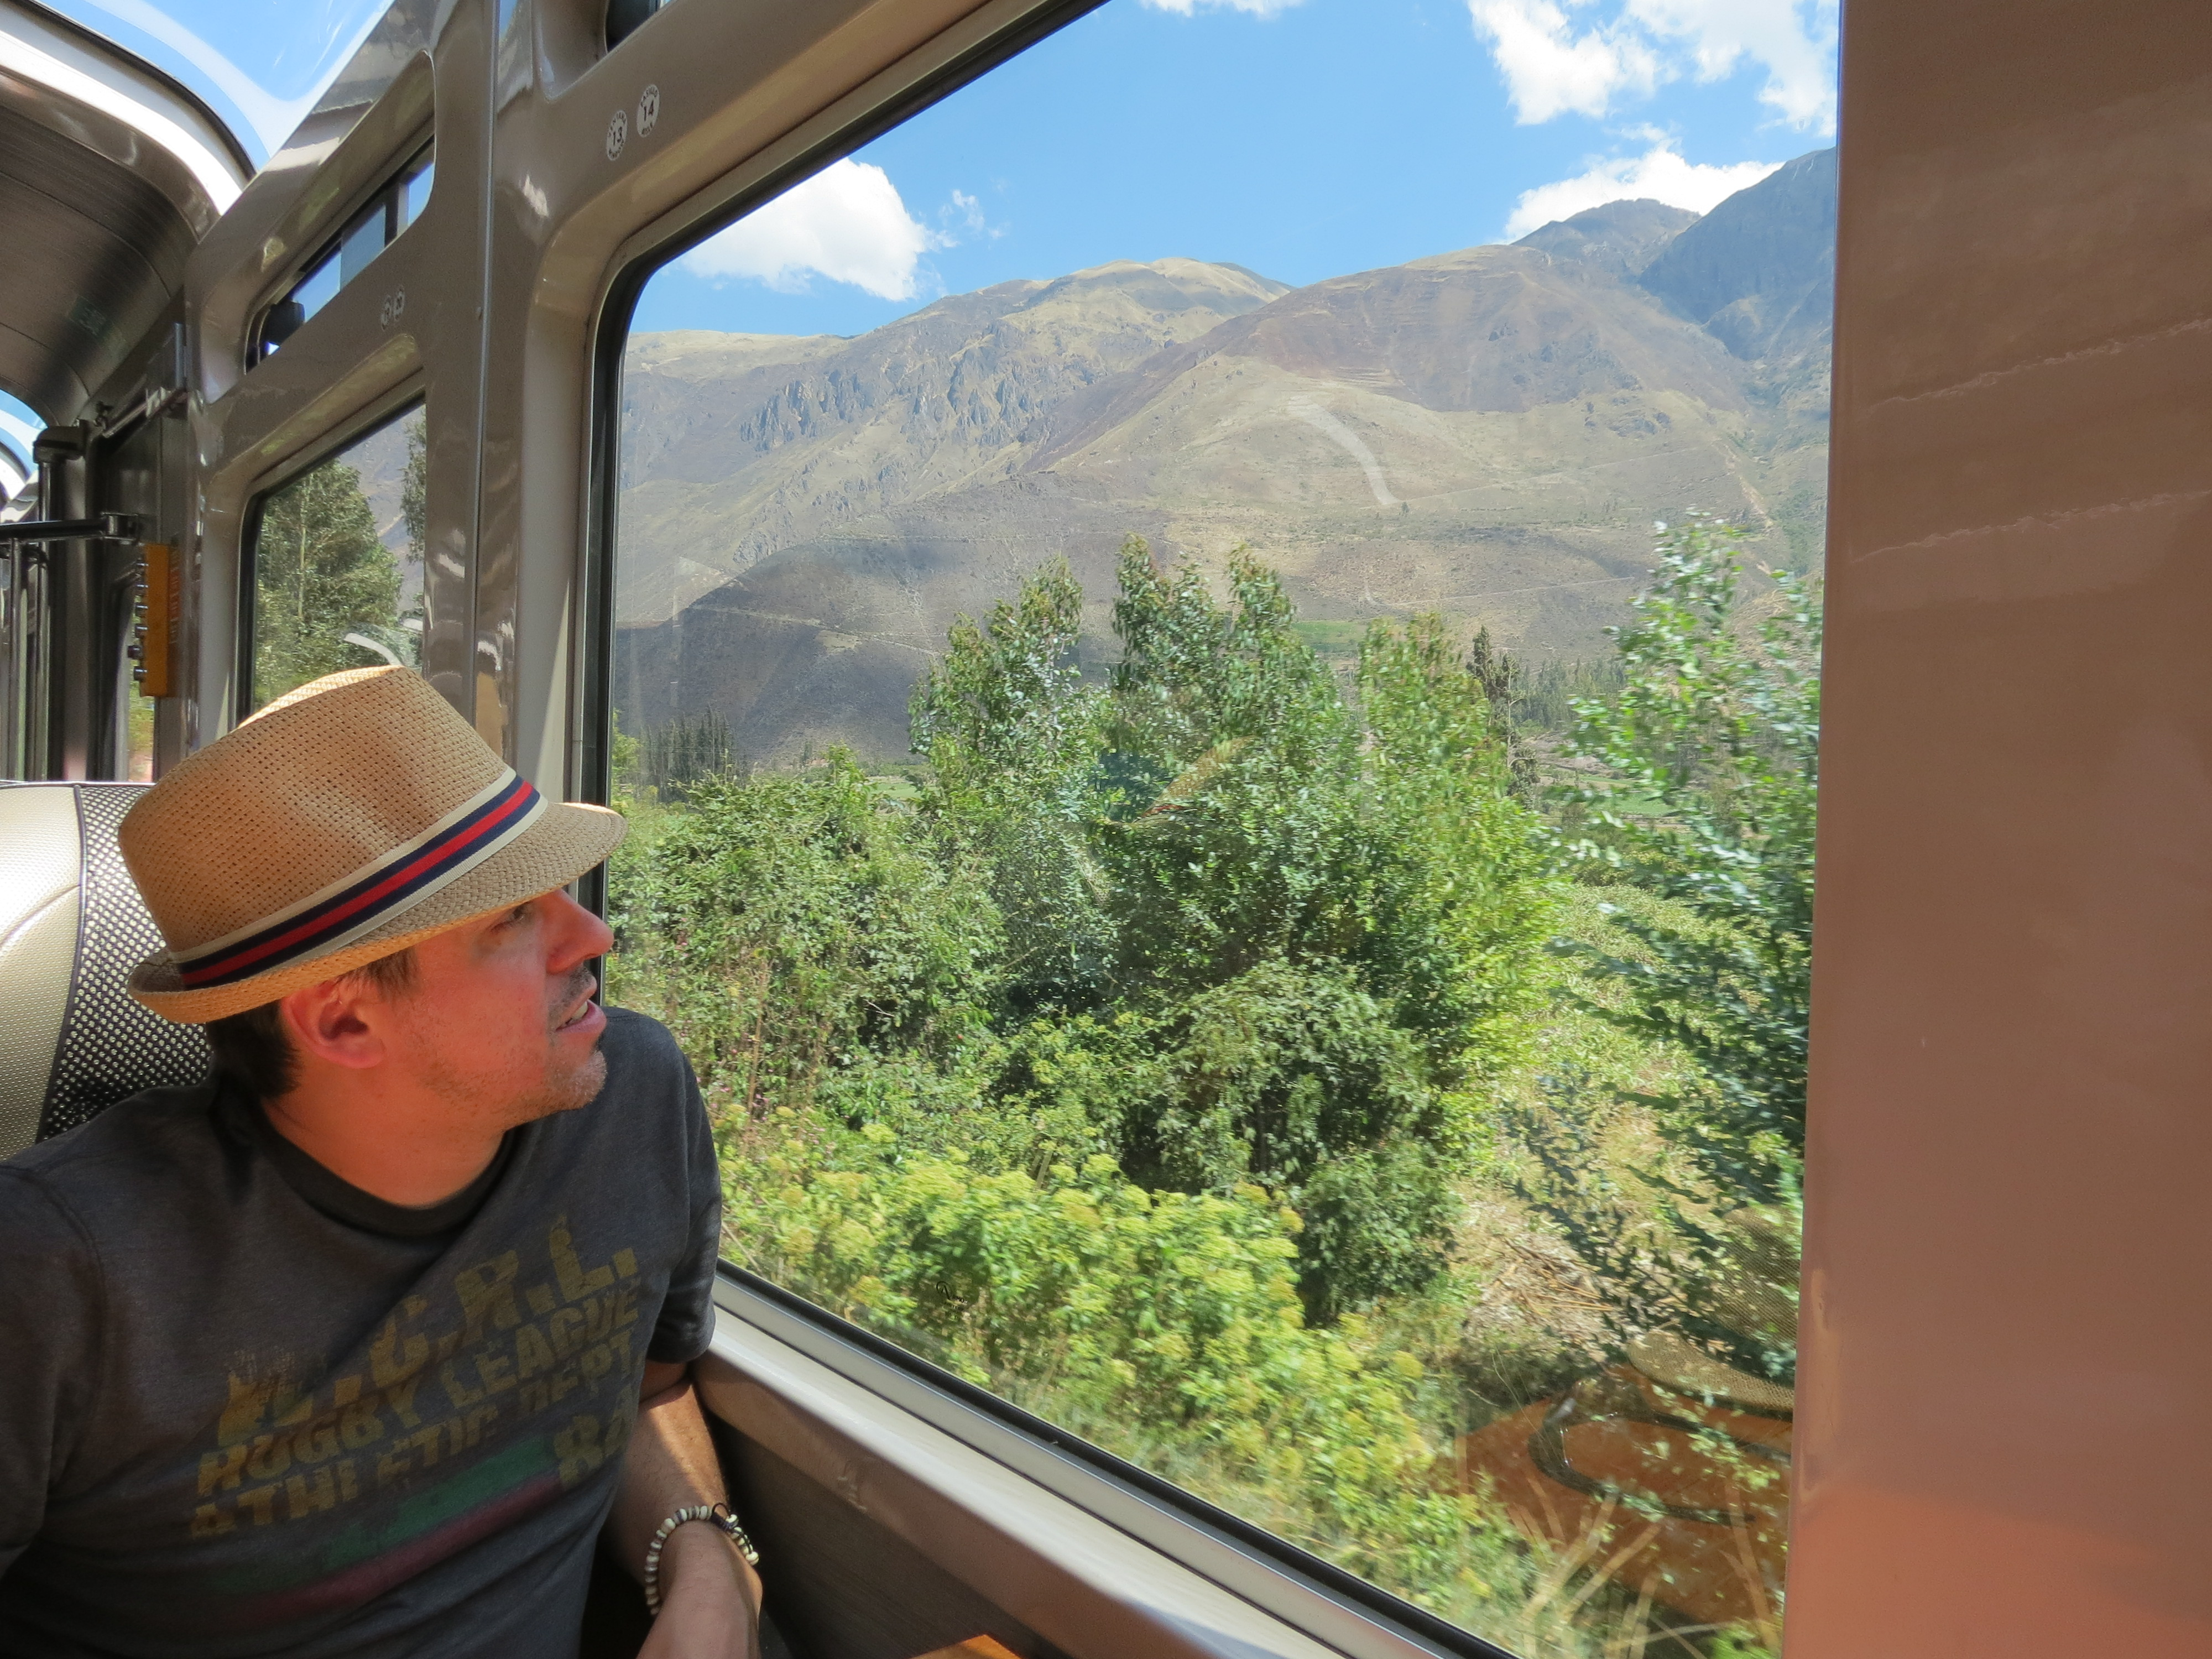 Day 3 - Train Ride to Aguas Calientes